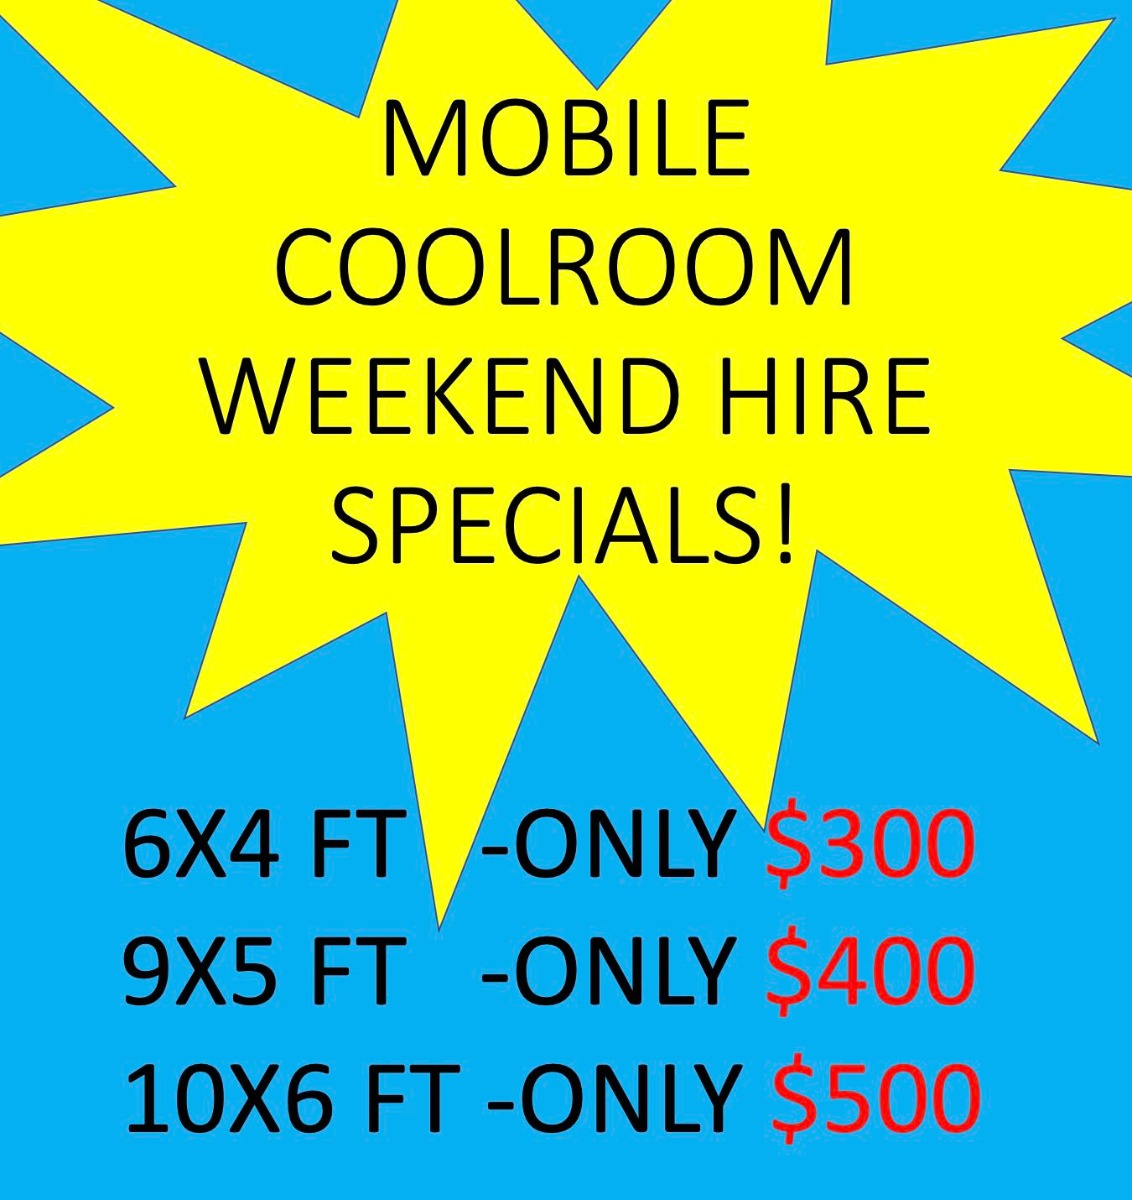 Mobile Coolroom Hire Weekend Special